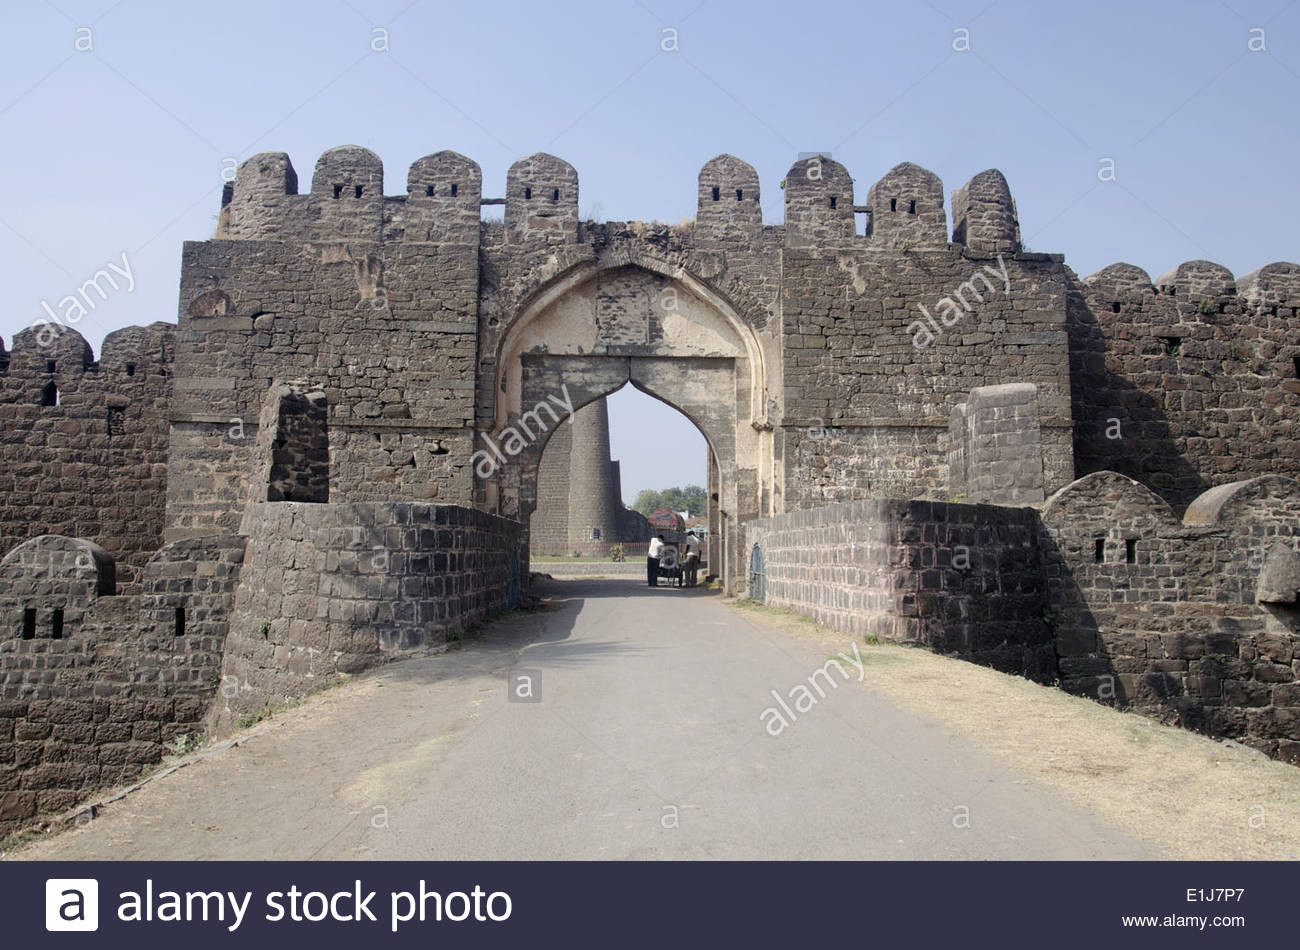 Entrance Of The Gulbarga Fort, Gulbarga, Karnataka, India Stock.